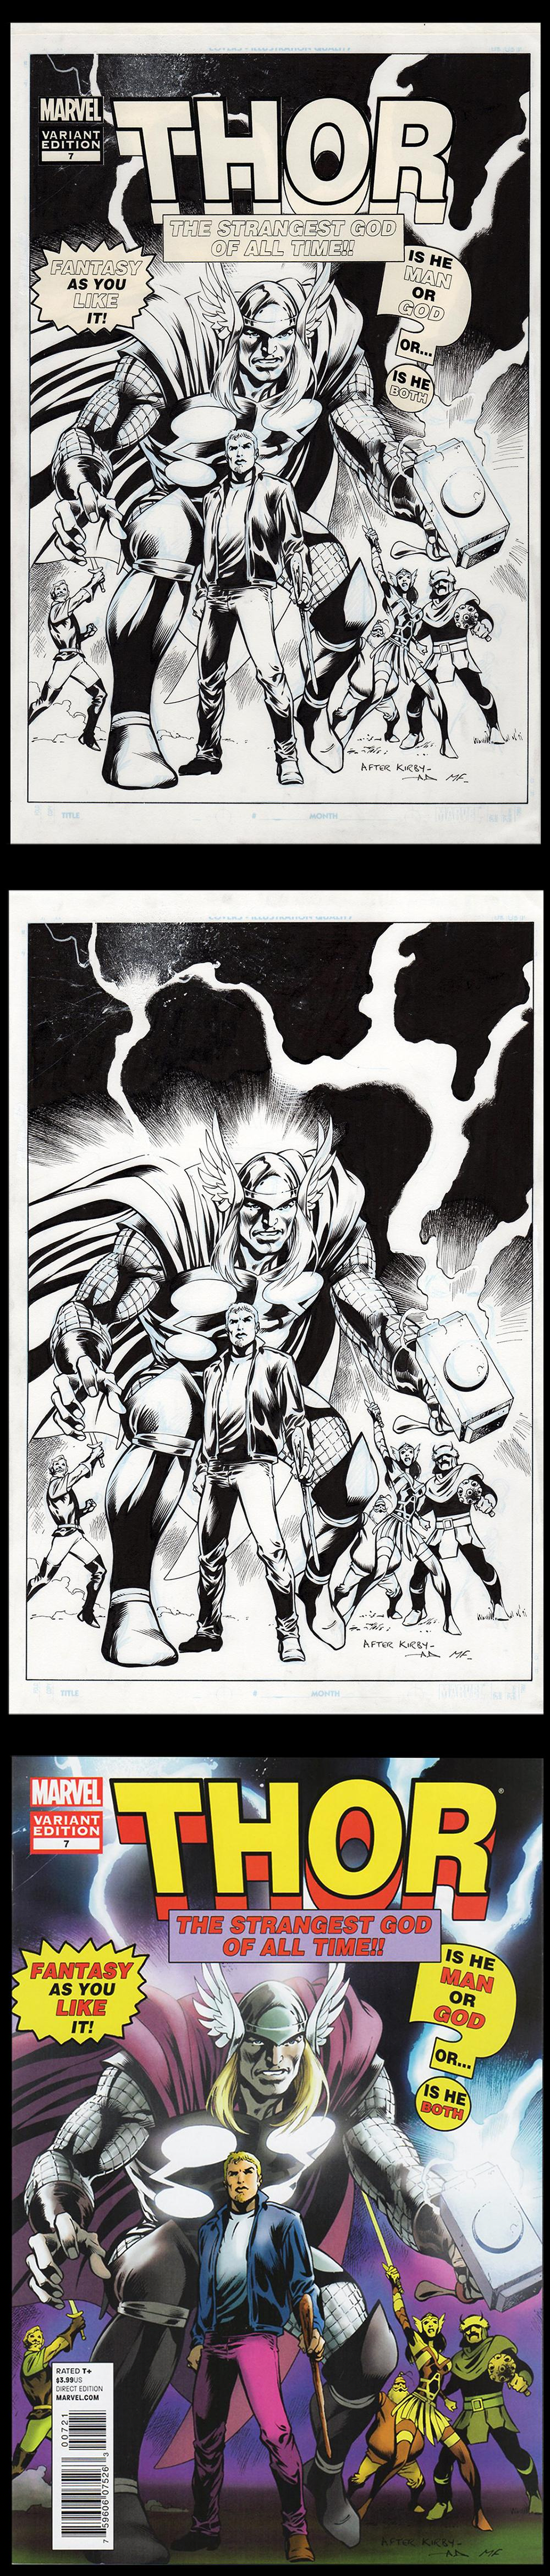 Image: Mighty Thor #7 Cover Art by Alan Davis